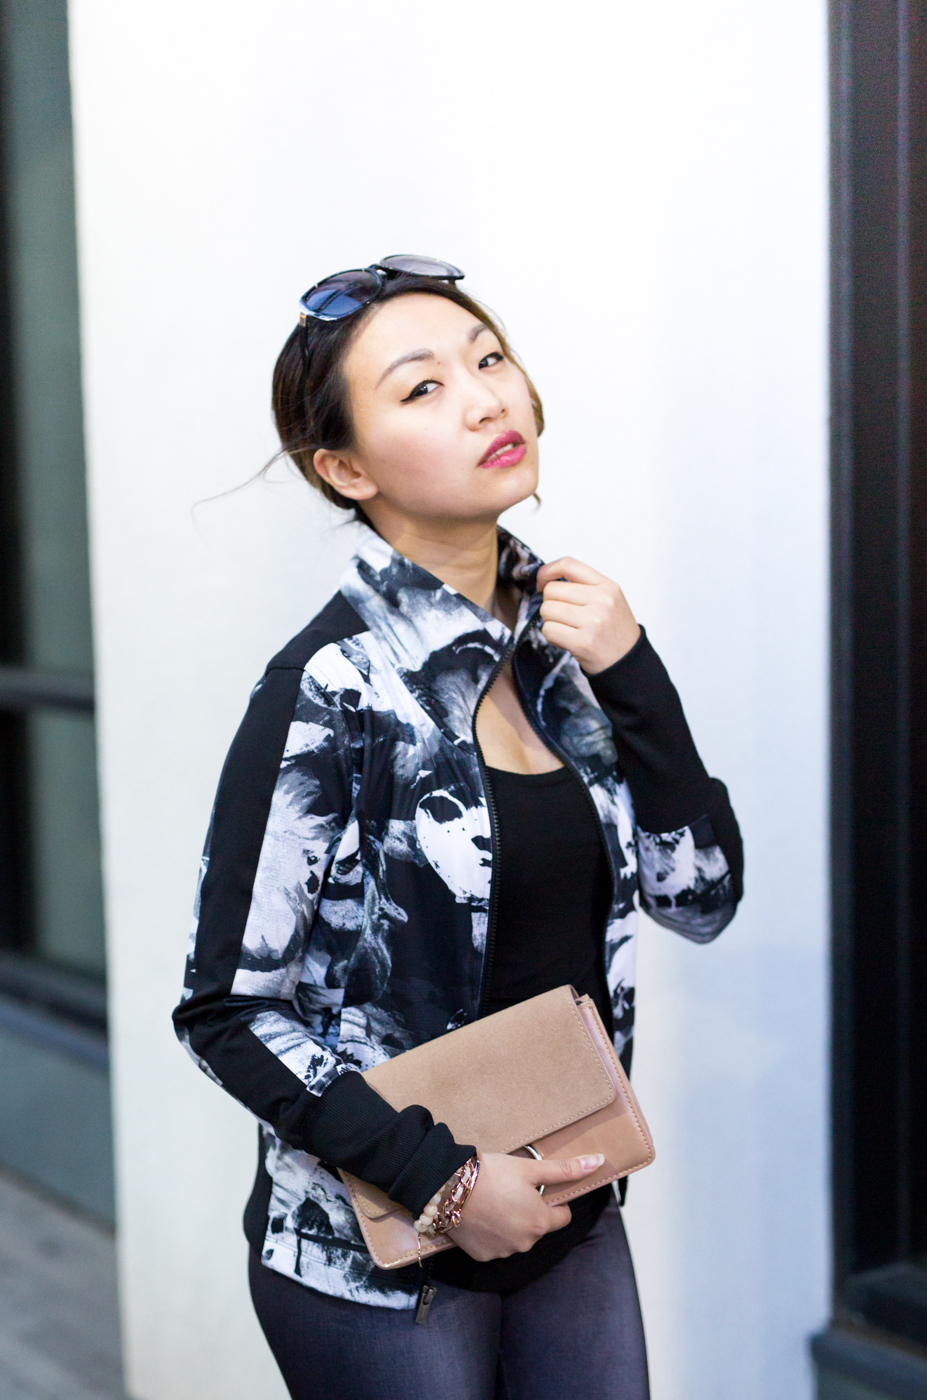 Lucy Black Abstract Floral Print Track Jacket | The Chic Diary